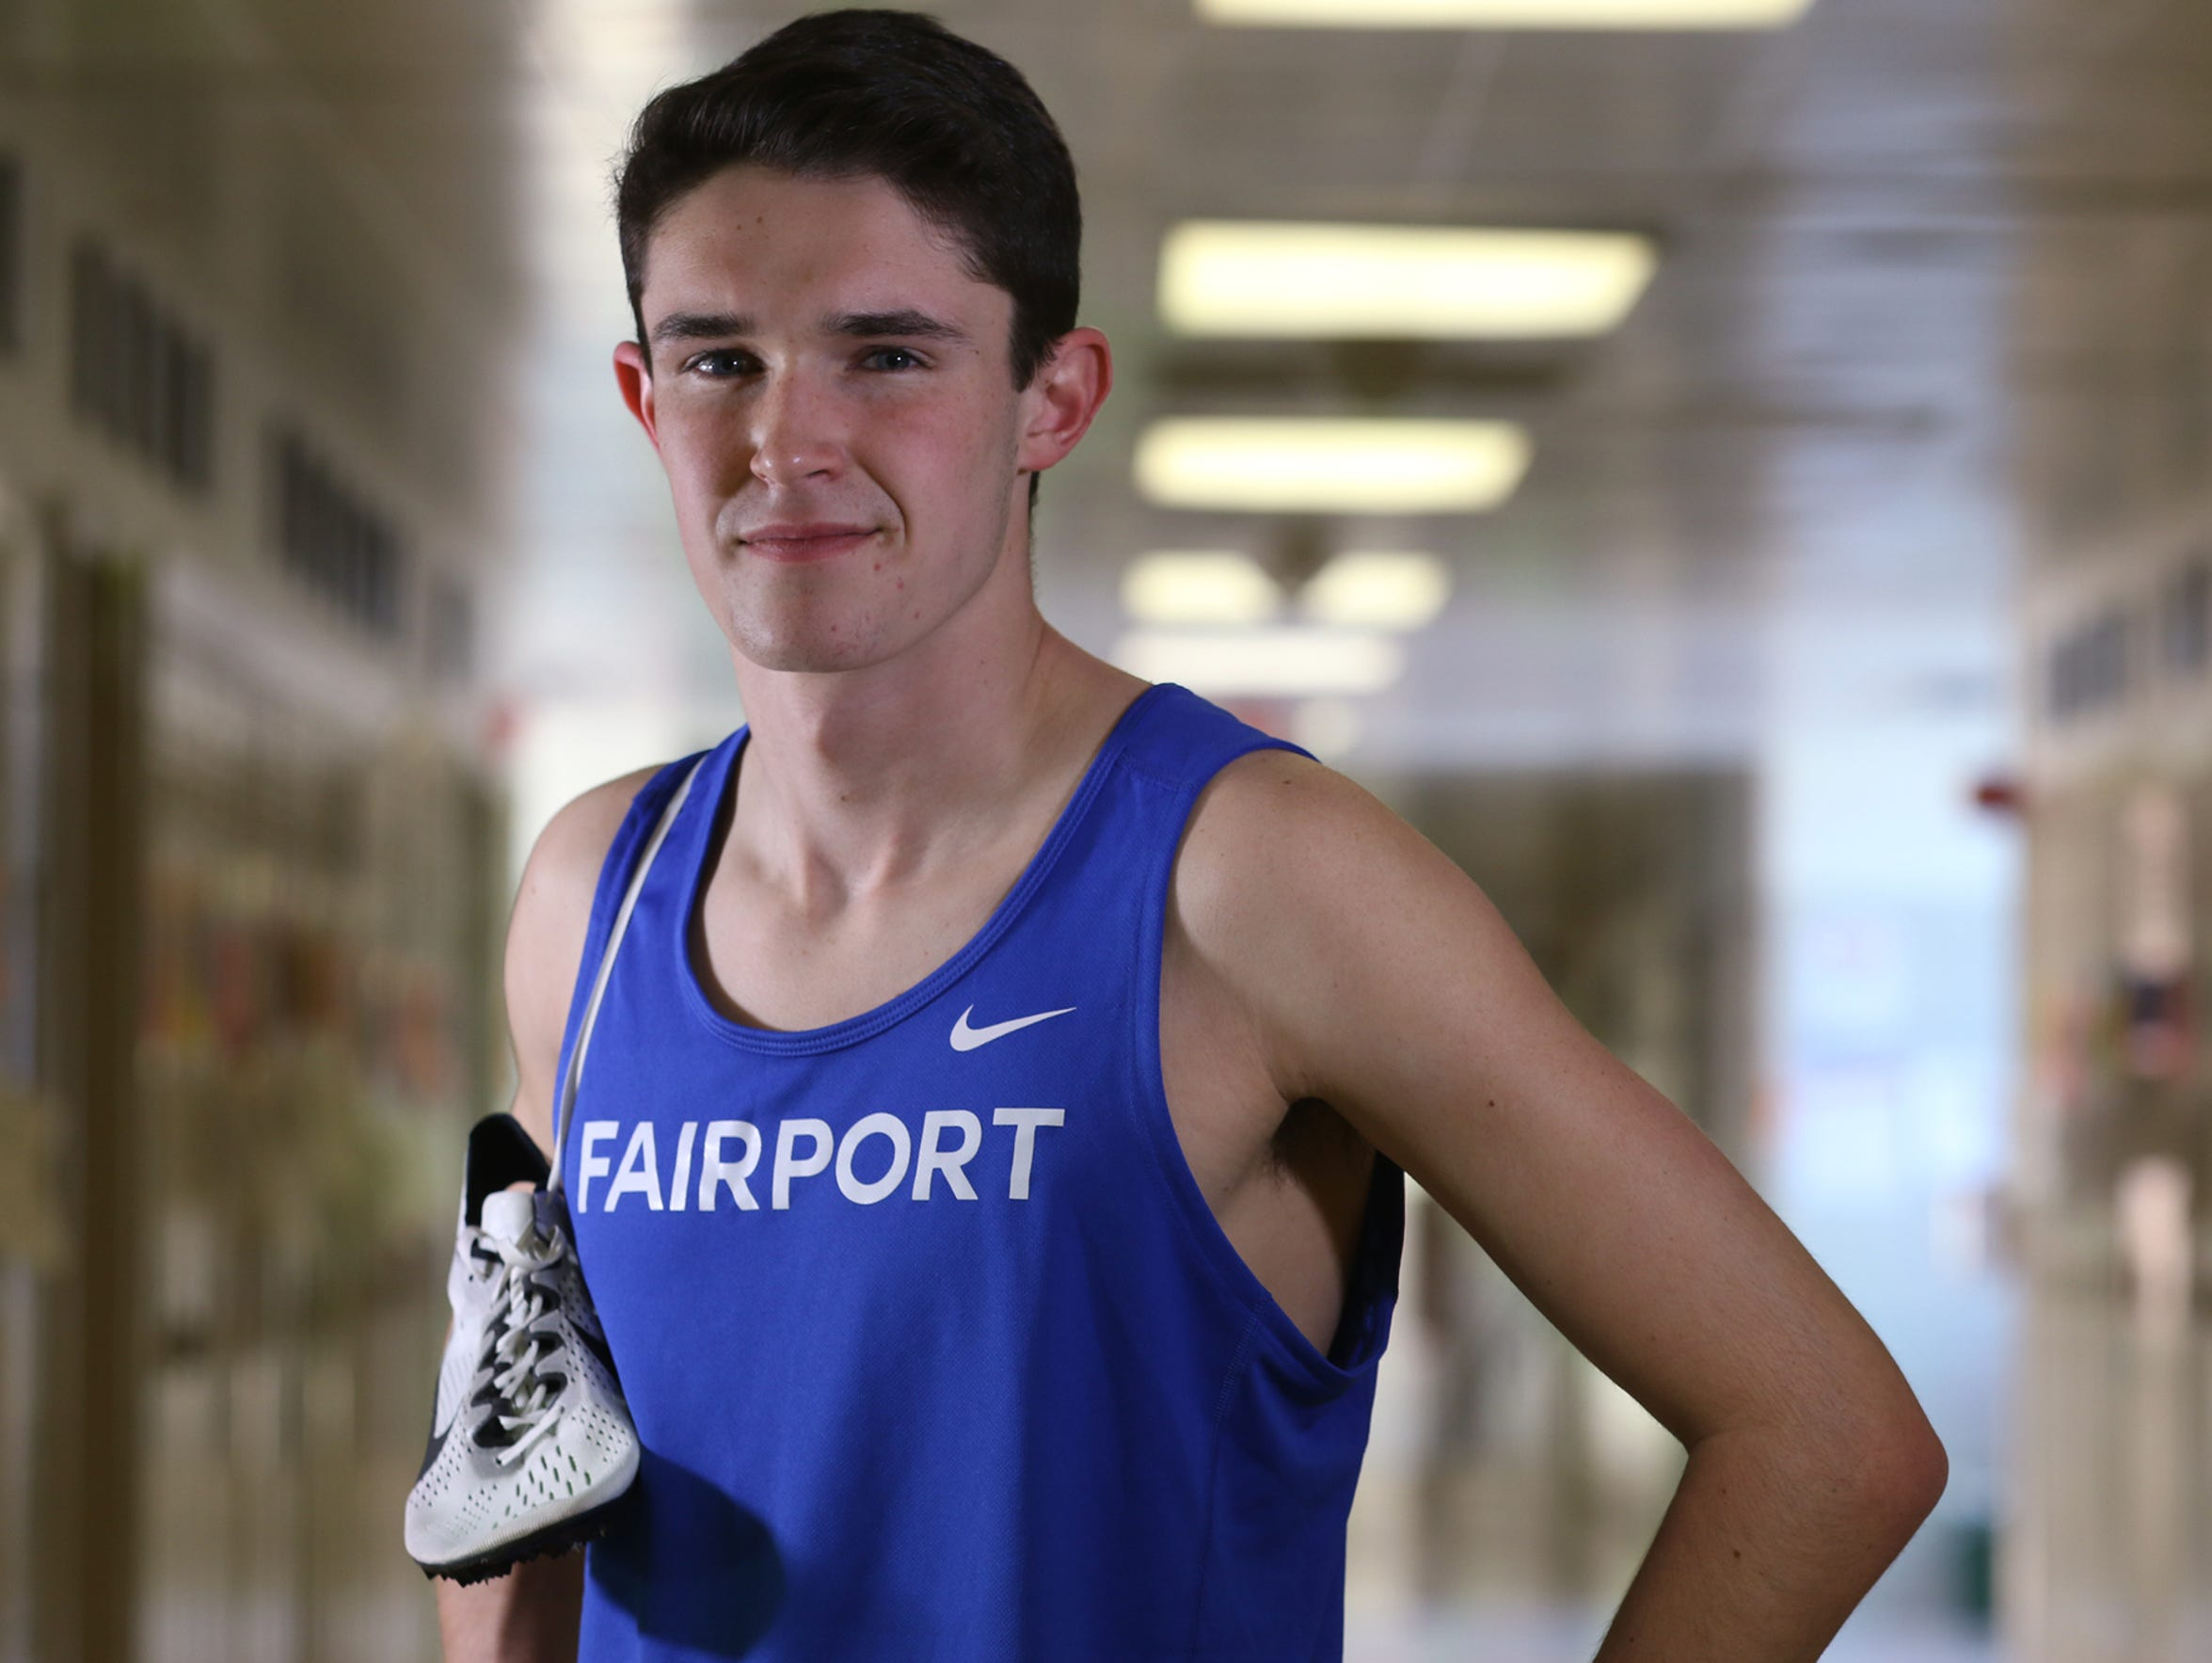 AGR Indoor Track Athlete of the Year, Fairport's Ben